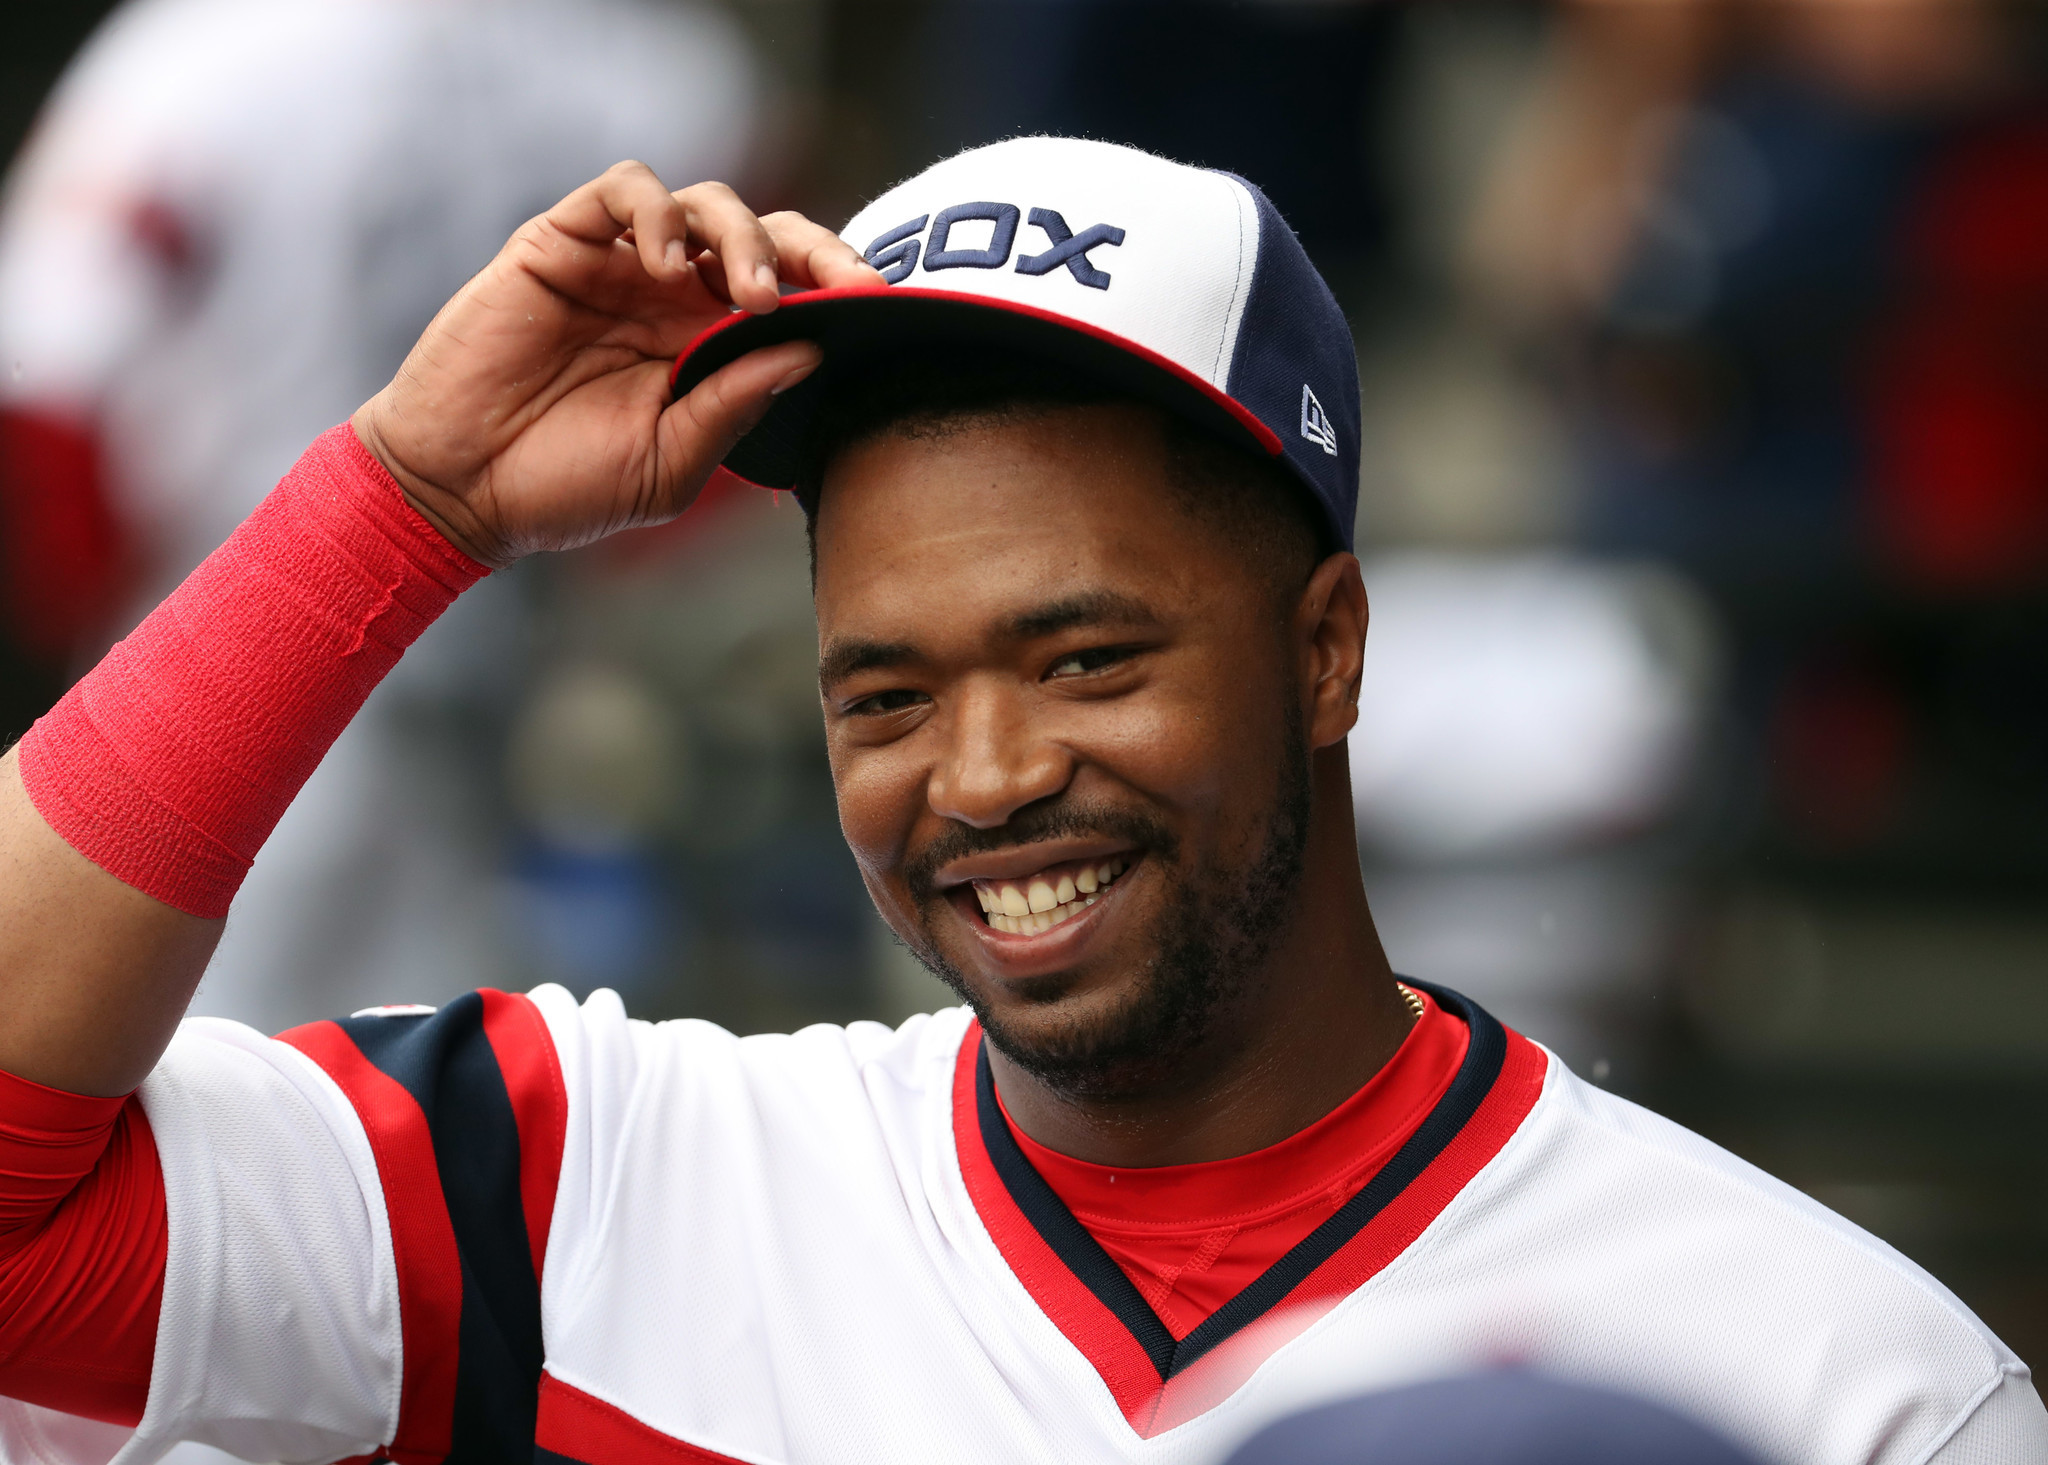 White Sox rookie Eloy Jimenez to miss Orioles series after being placed on bereavement list